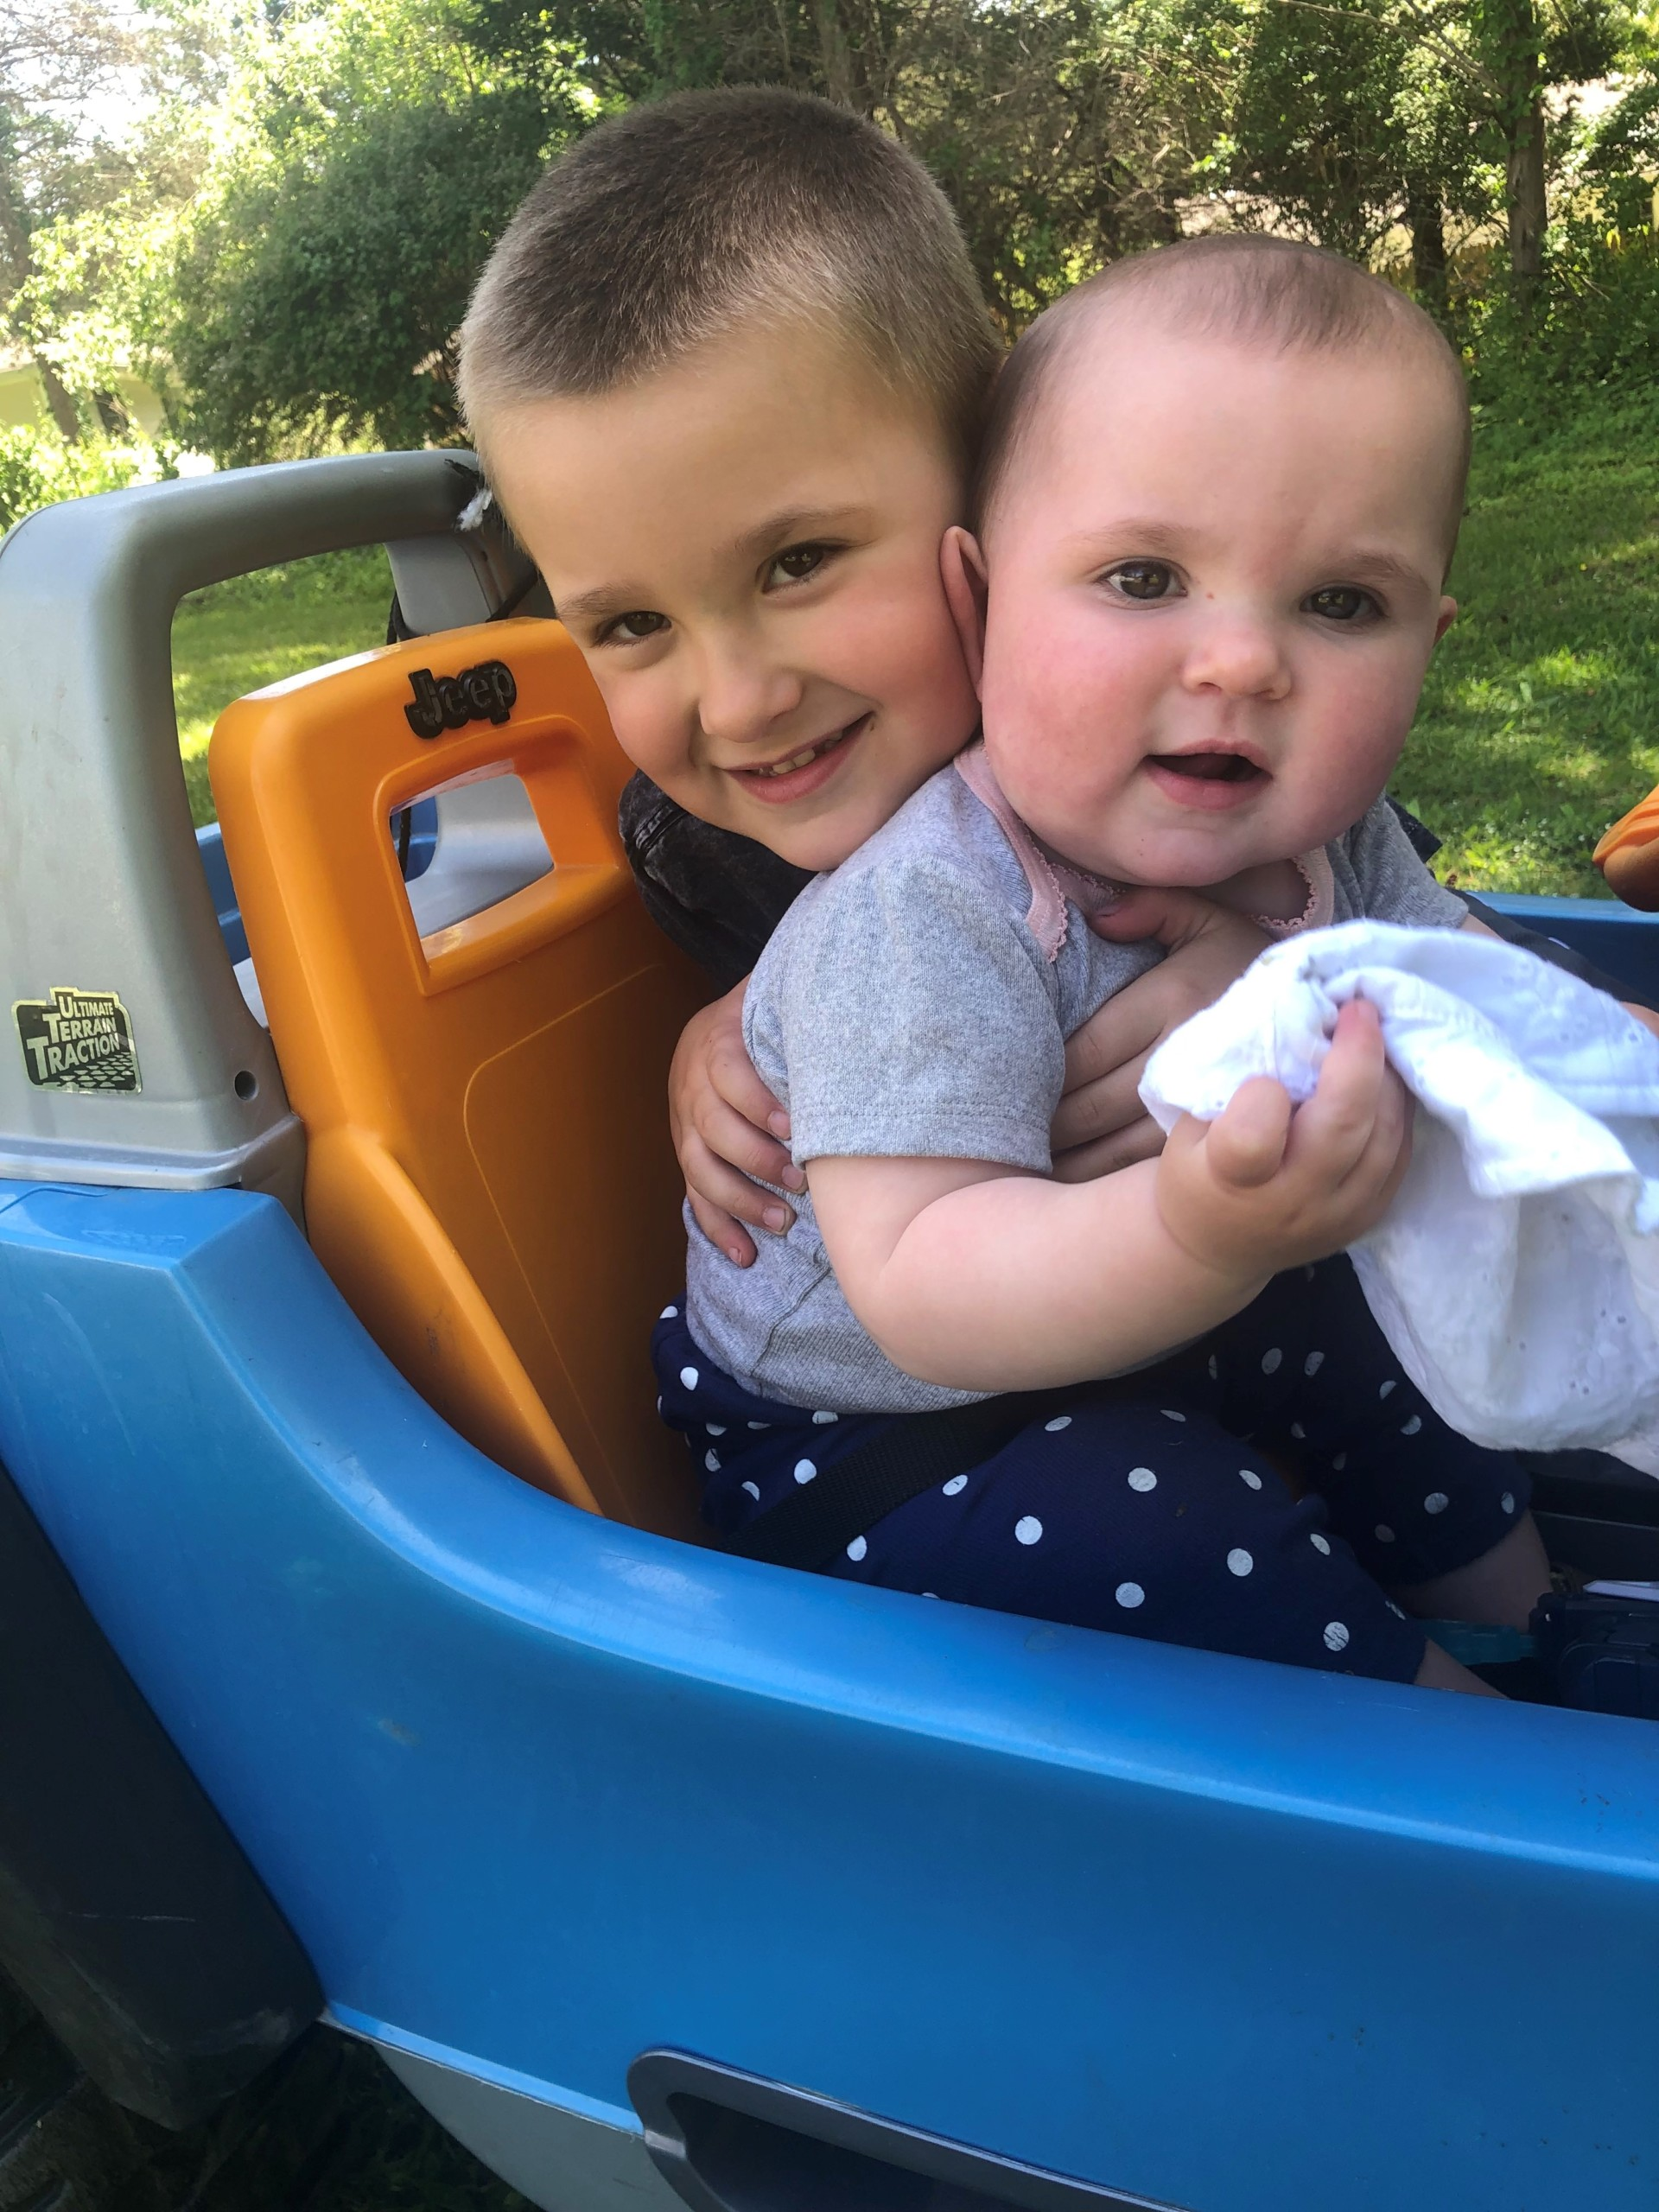 Esmae and Oliver, two patients in ENT, ride in a toy car.